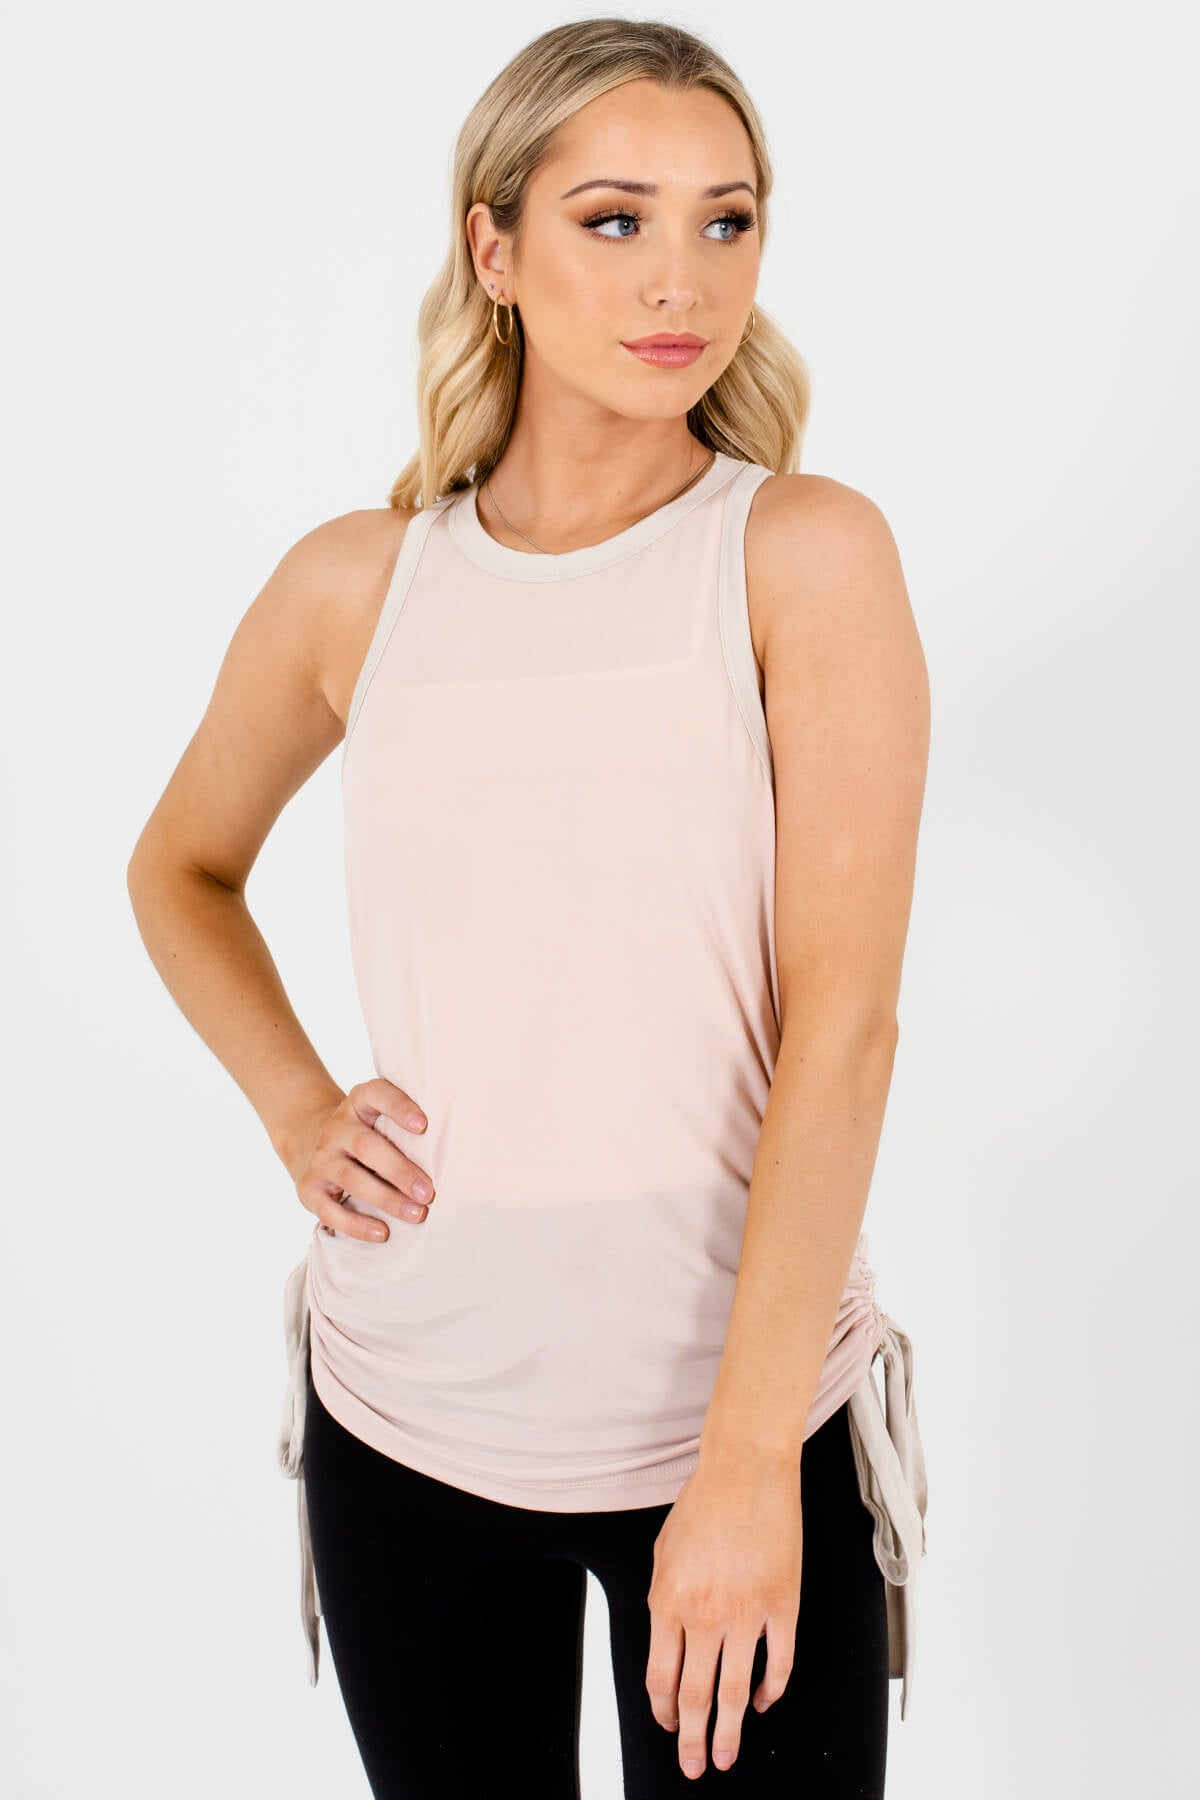 Blush Pink Ruched Drawstring Racerback Tank Tops for Women